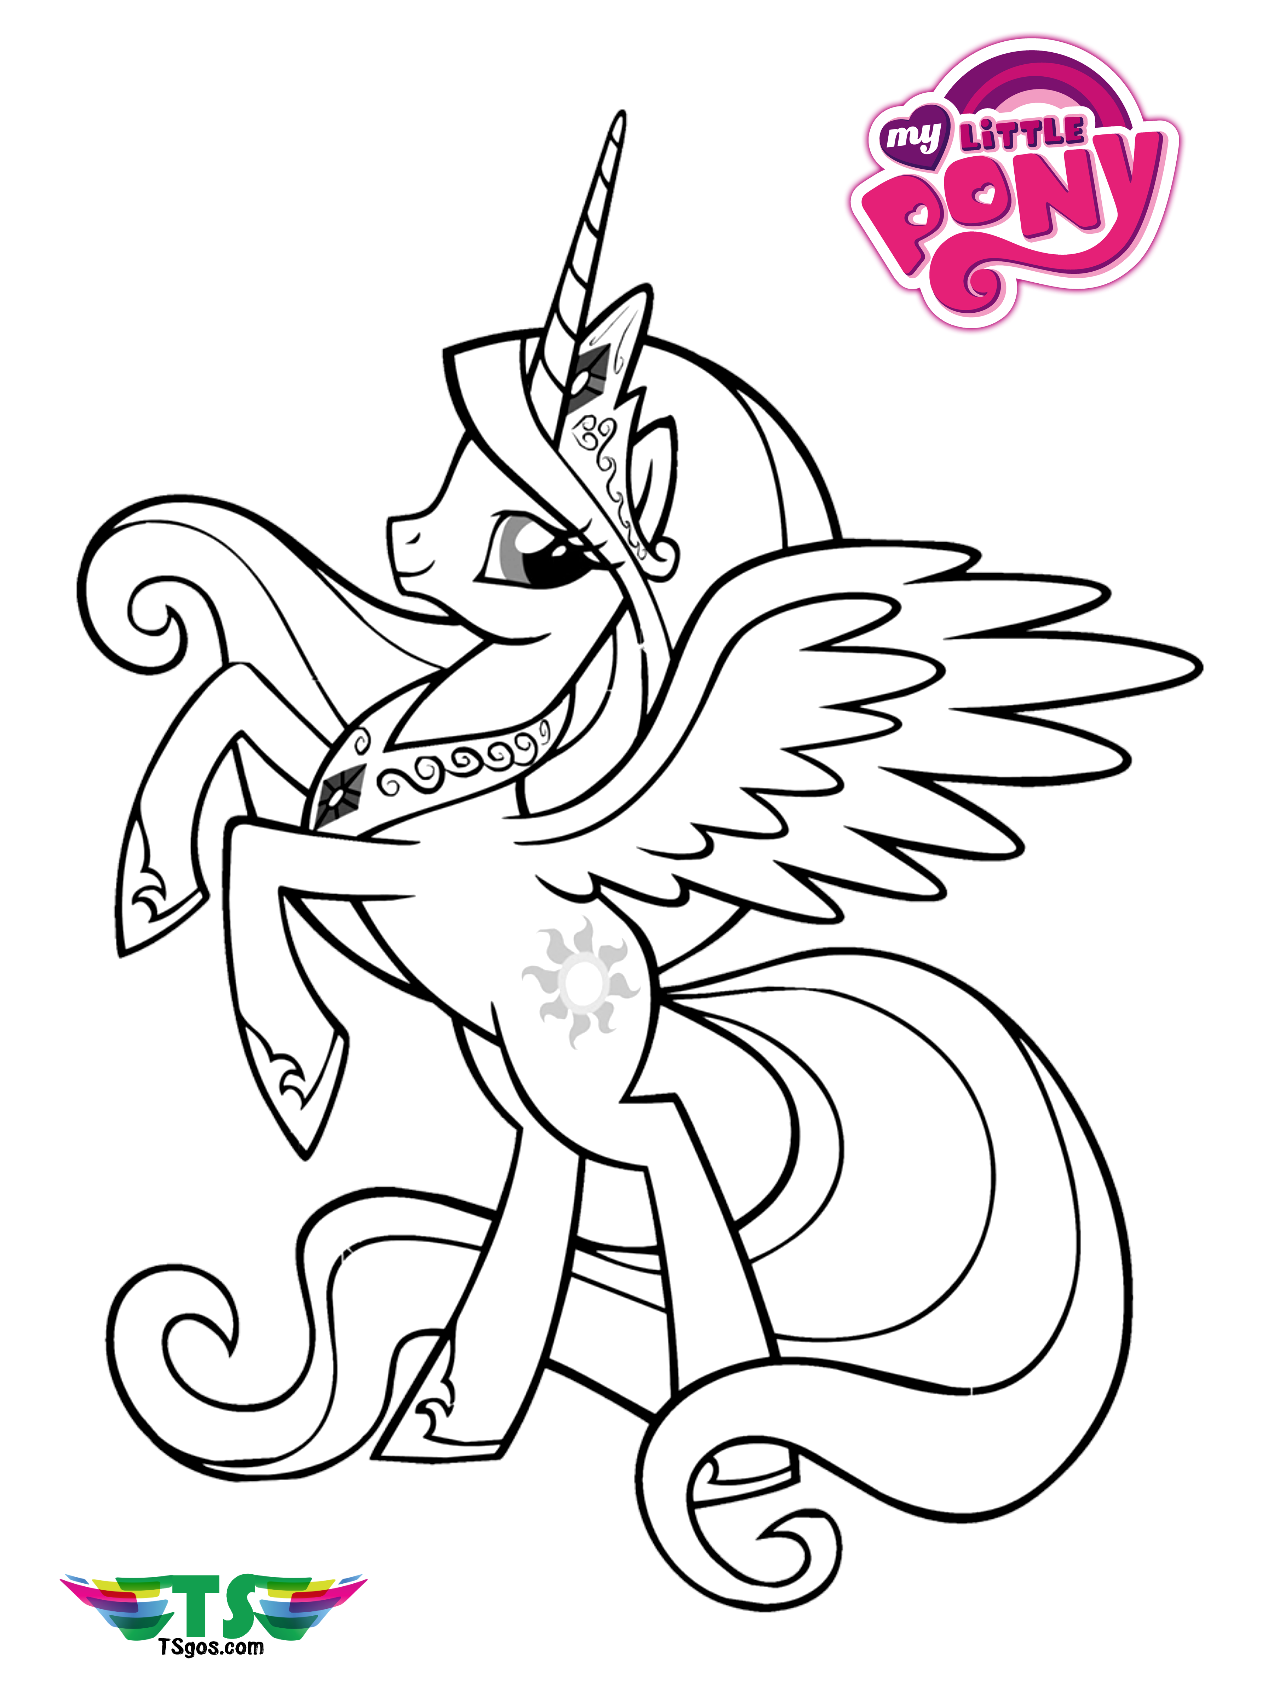 Free download My Little Pony Unicorn coloring page ...